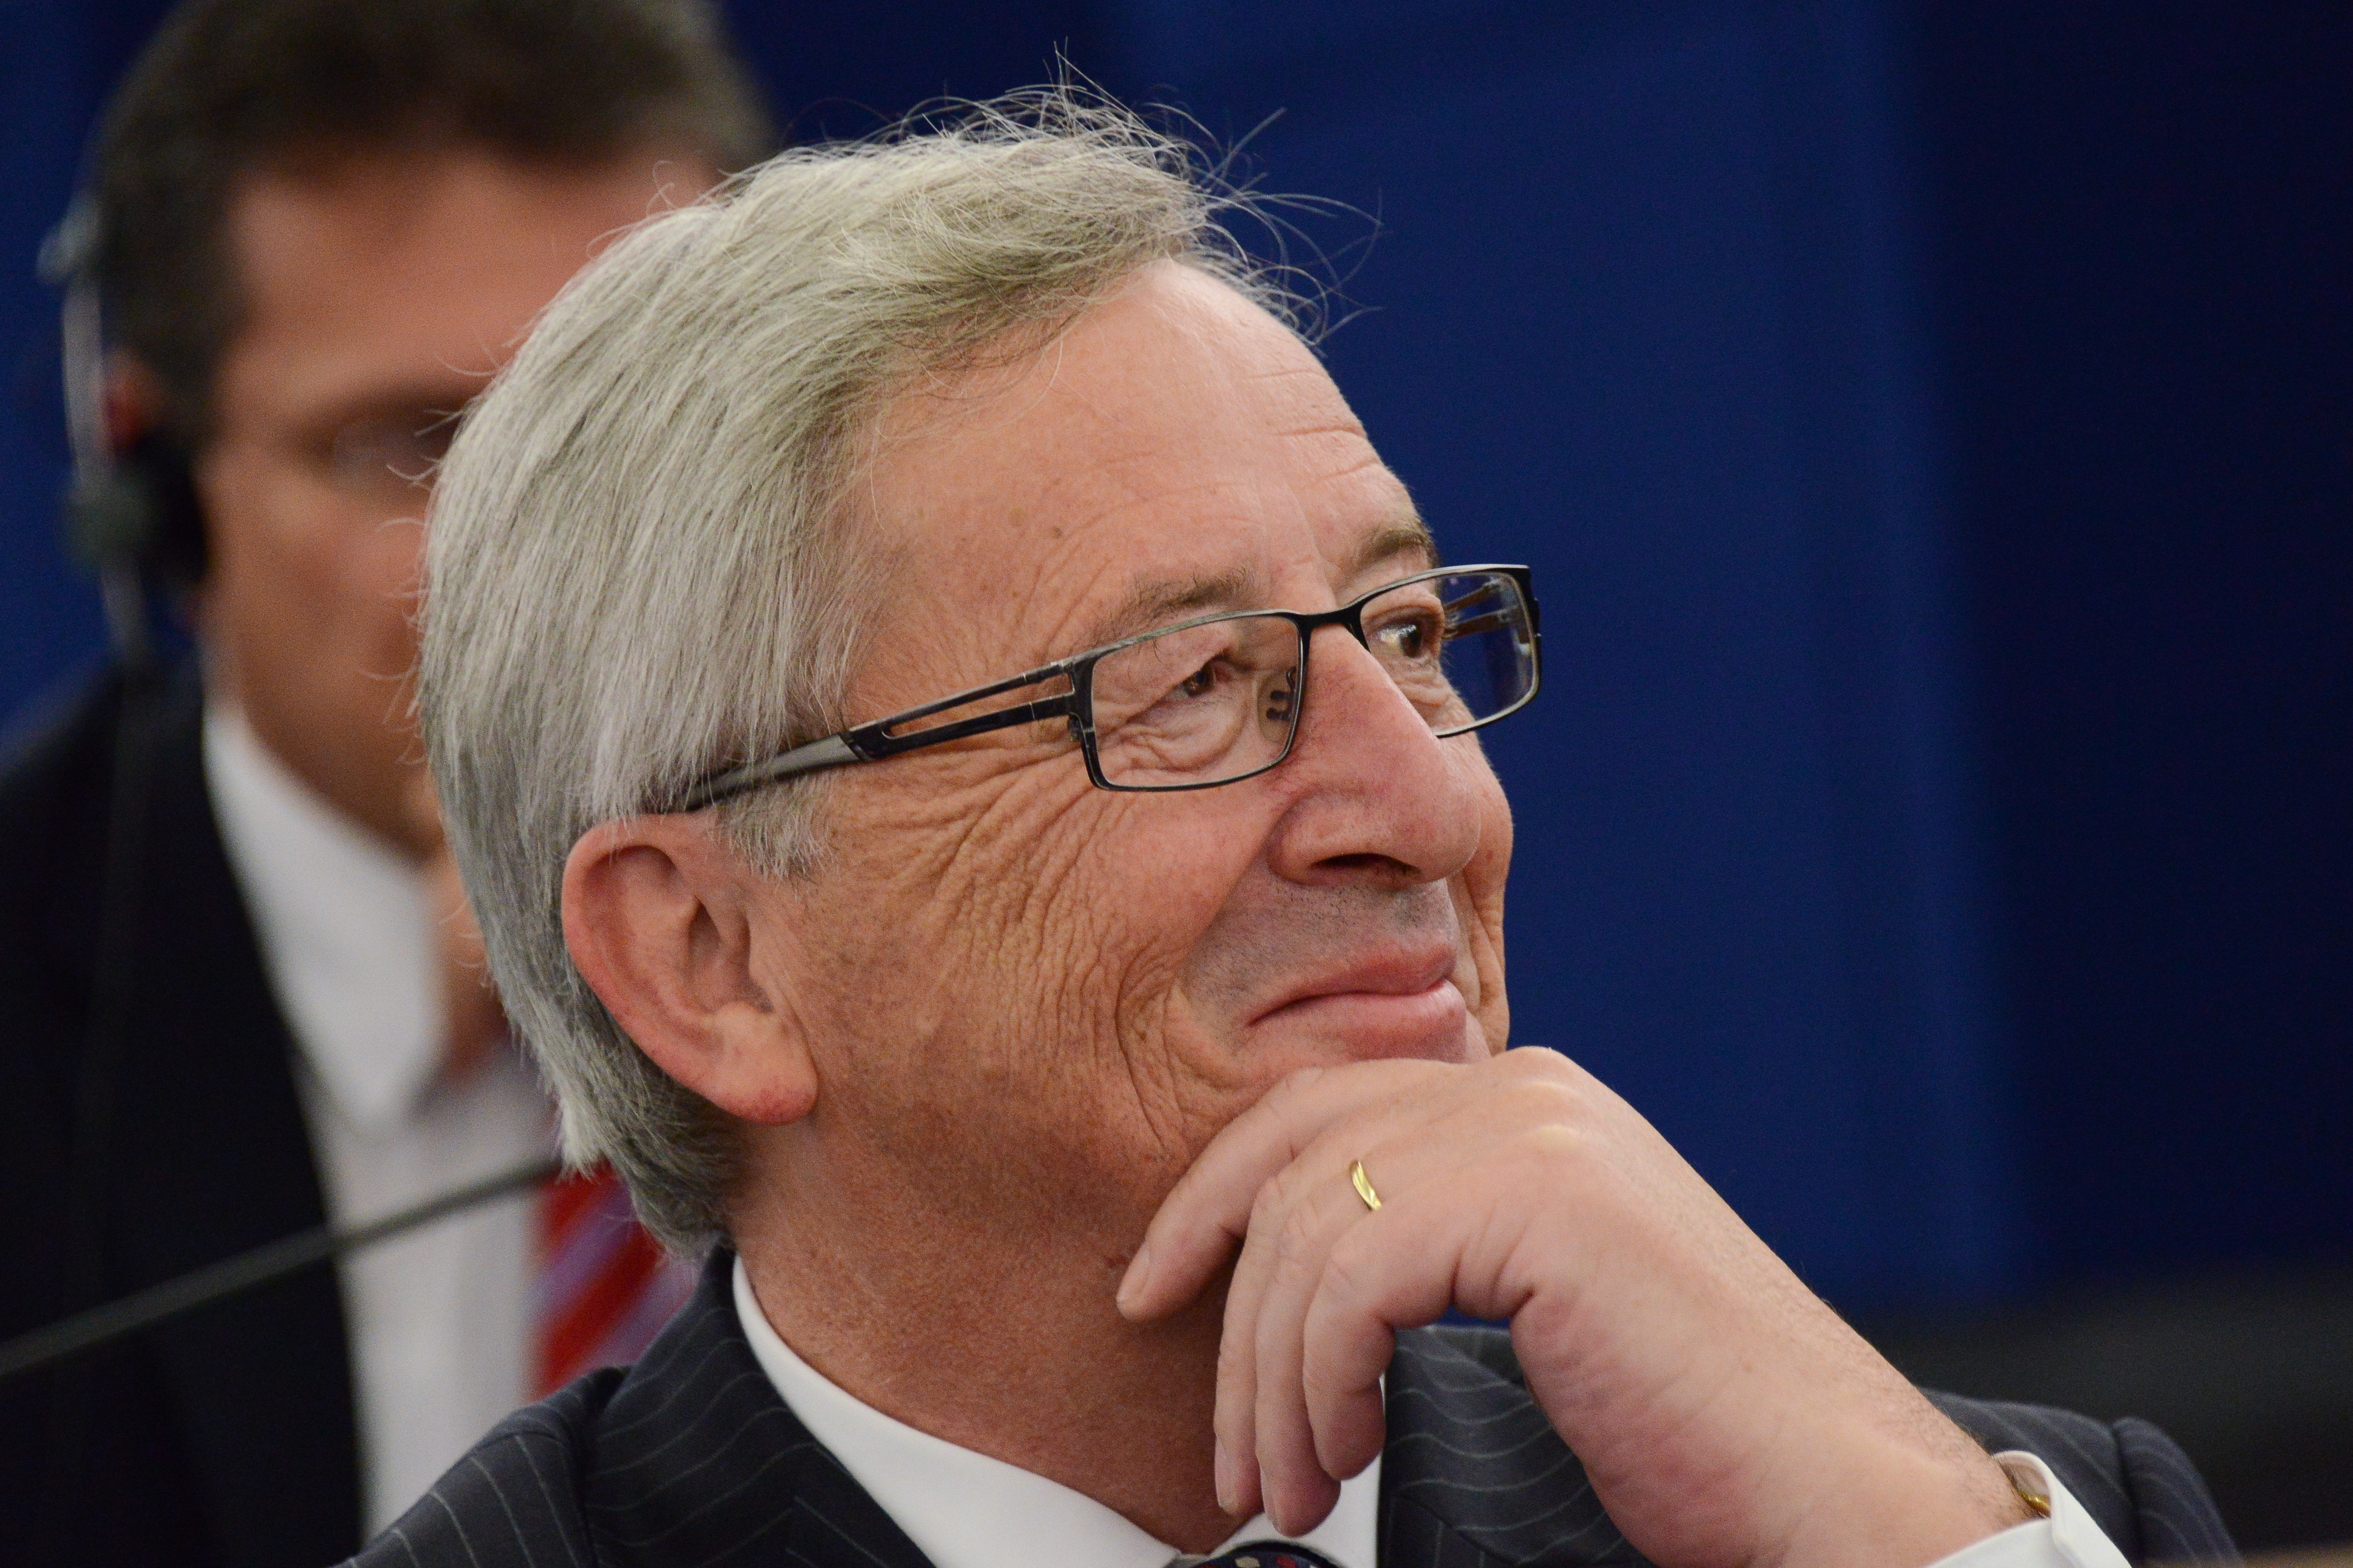 Are Juncker's ambitions and styles readily adopted and shared by individual Member States? Source: Flickr / Euractiv.com